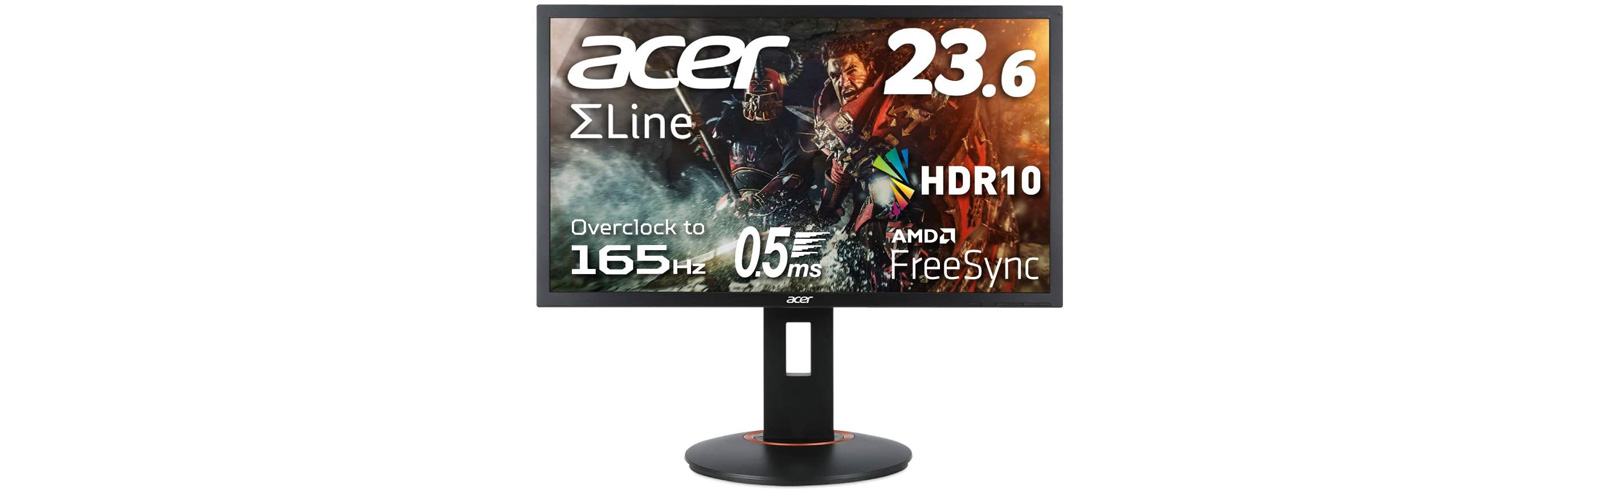 """Acer XF240Q Sbmiiprx is released with a 23.6"""" FHD TN display, 165Hz refresh rate"""